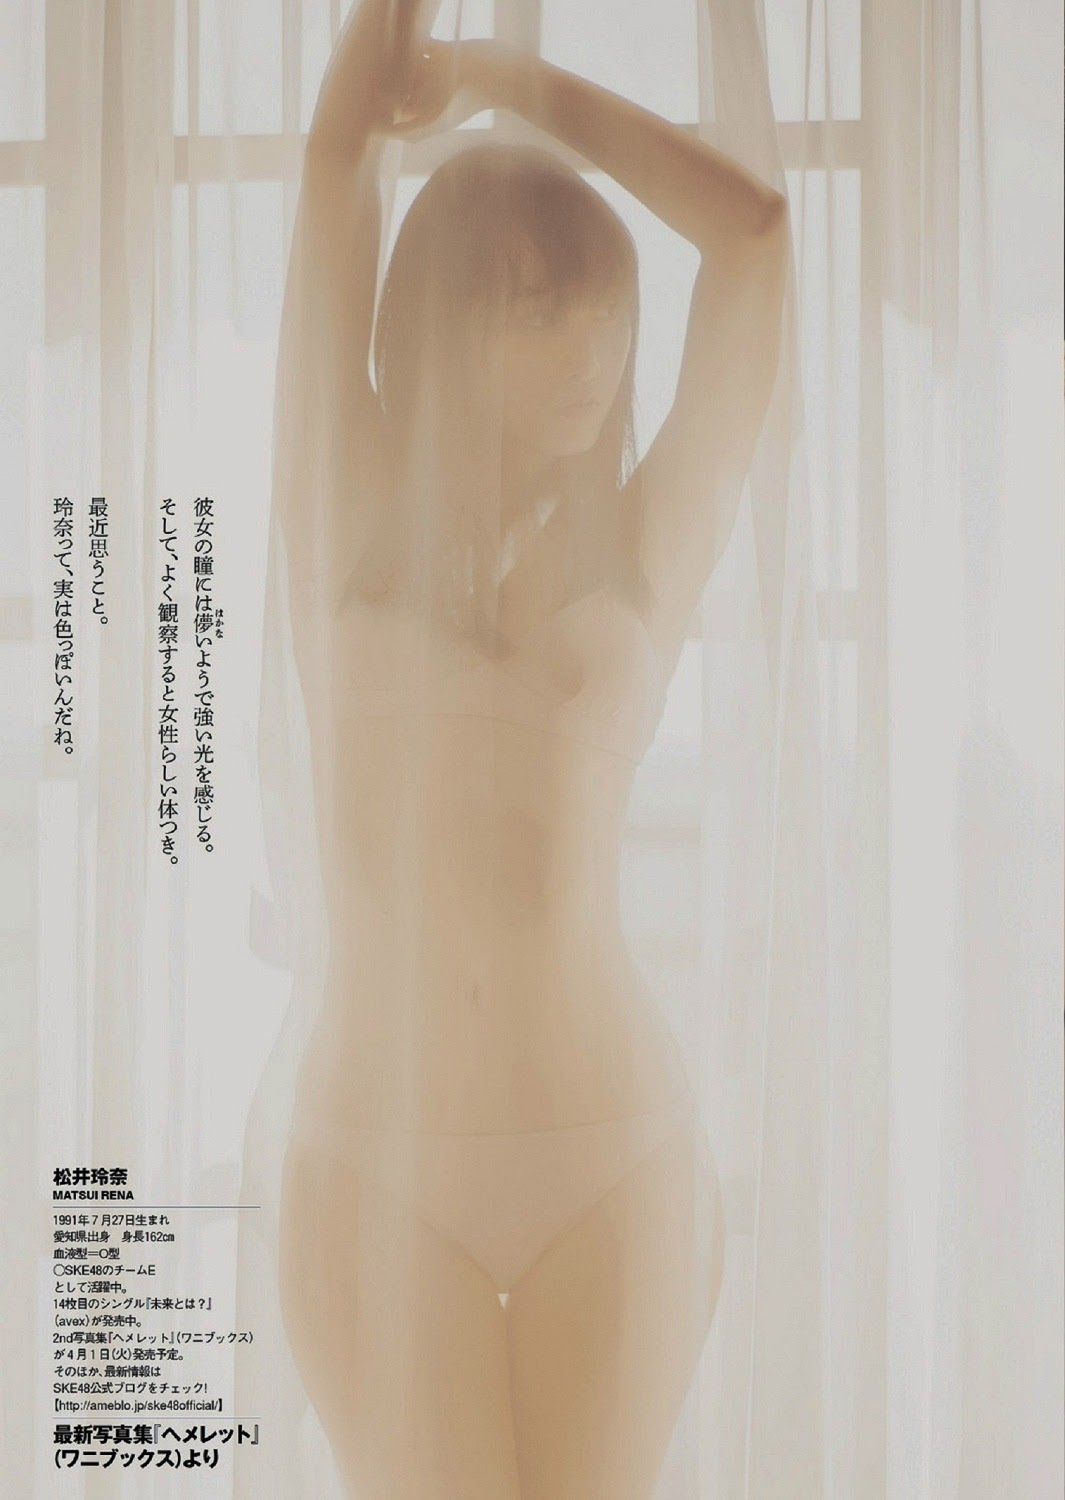 Matsui Rena 松井玲奈 Weekly Playboy April 2014 Photos 5